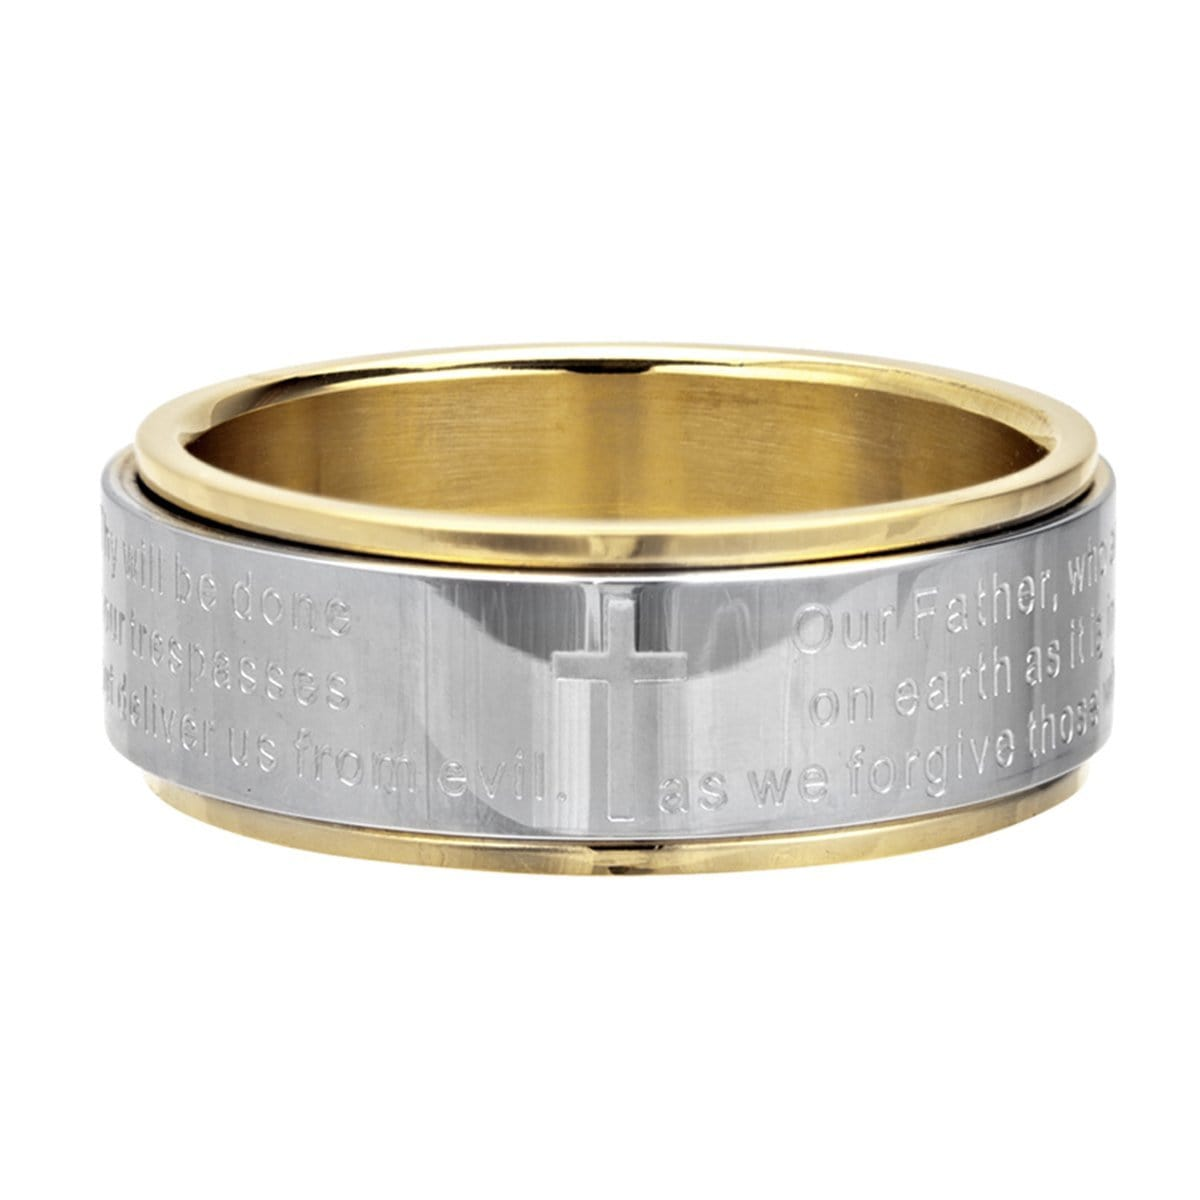 Gold & Silver Stainless Steel Prayer Ring